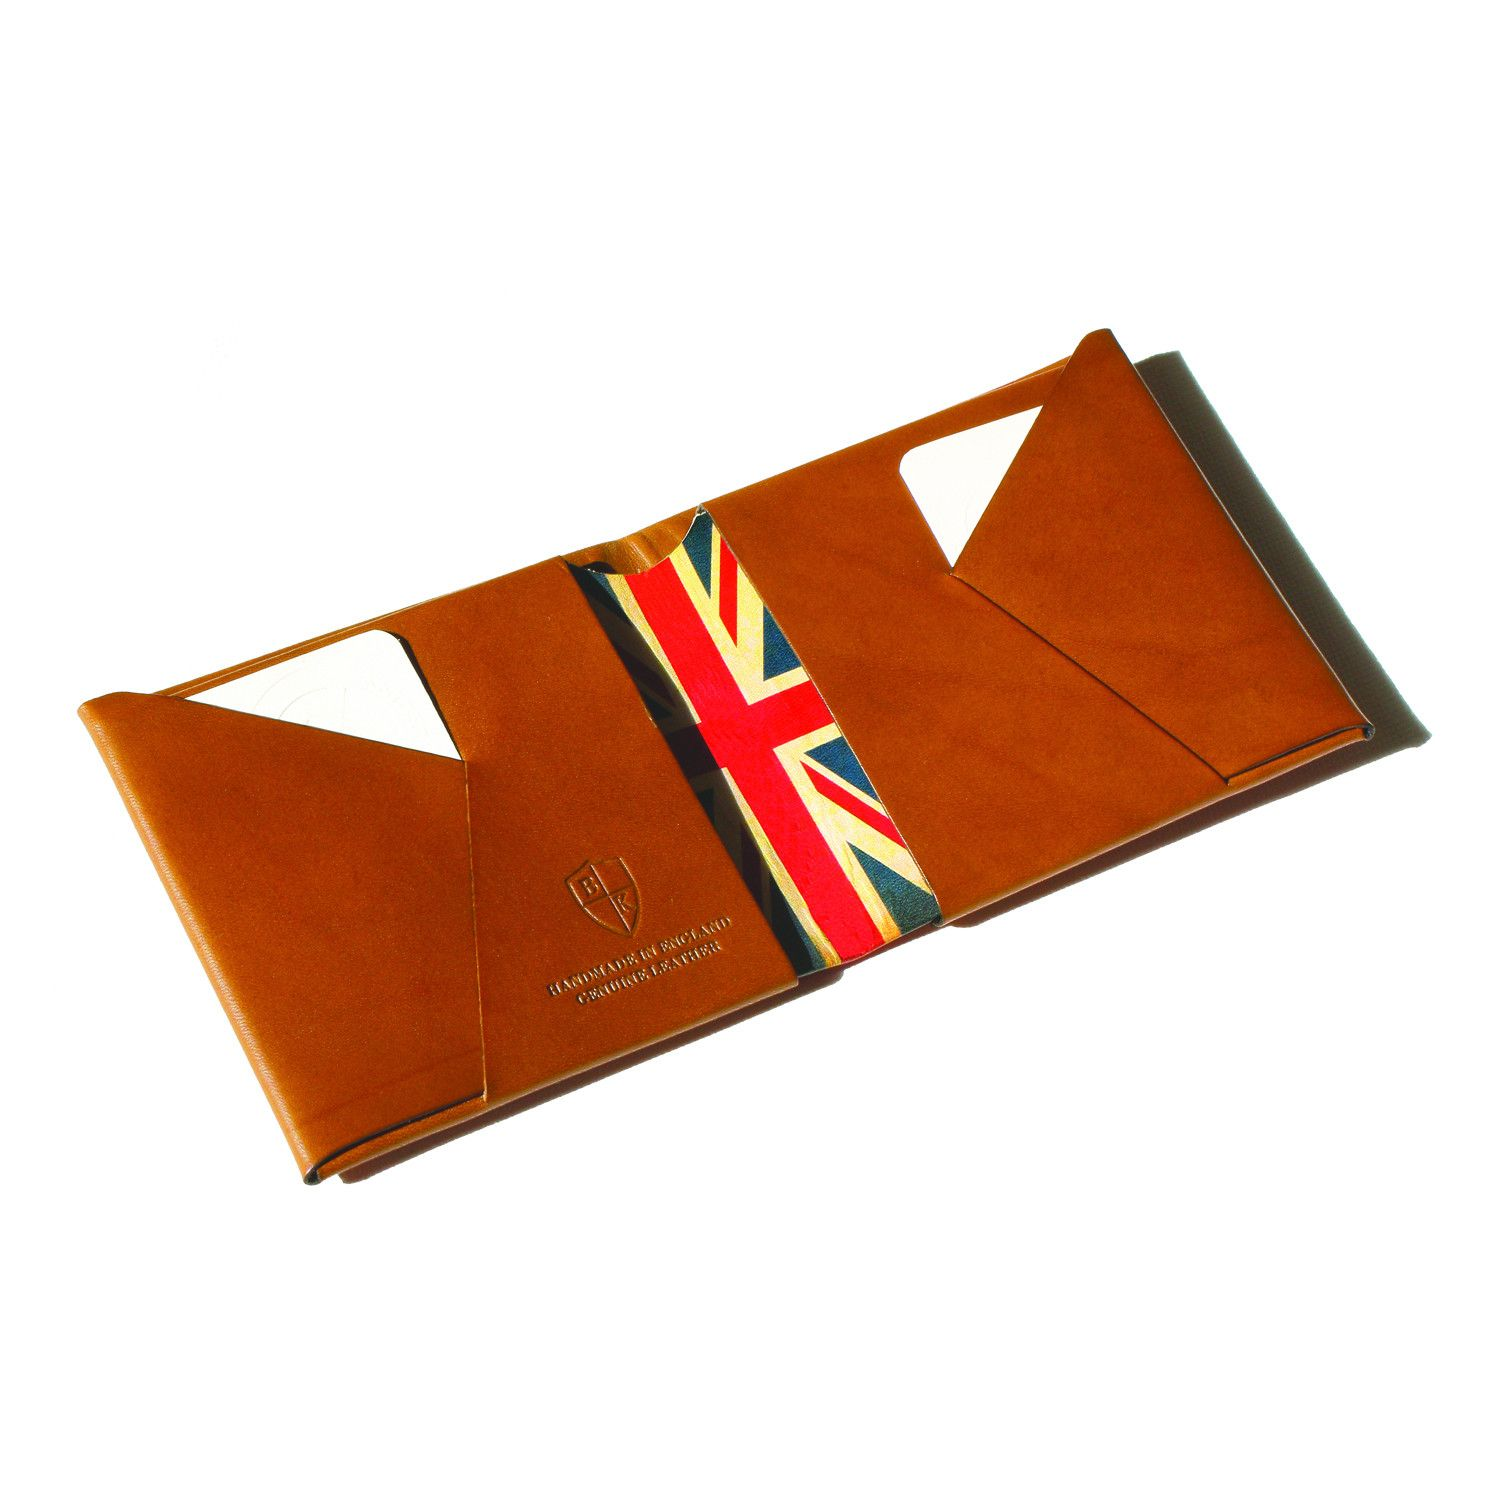 gorgeous union jack inspired wallet - i'm in love!